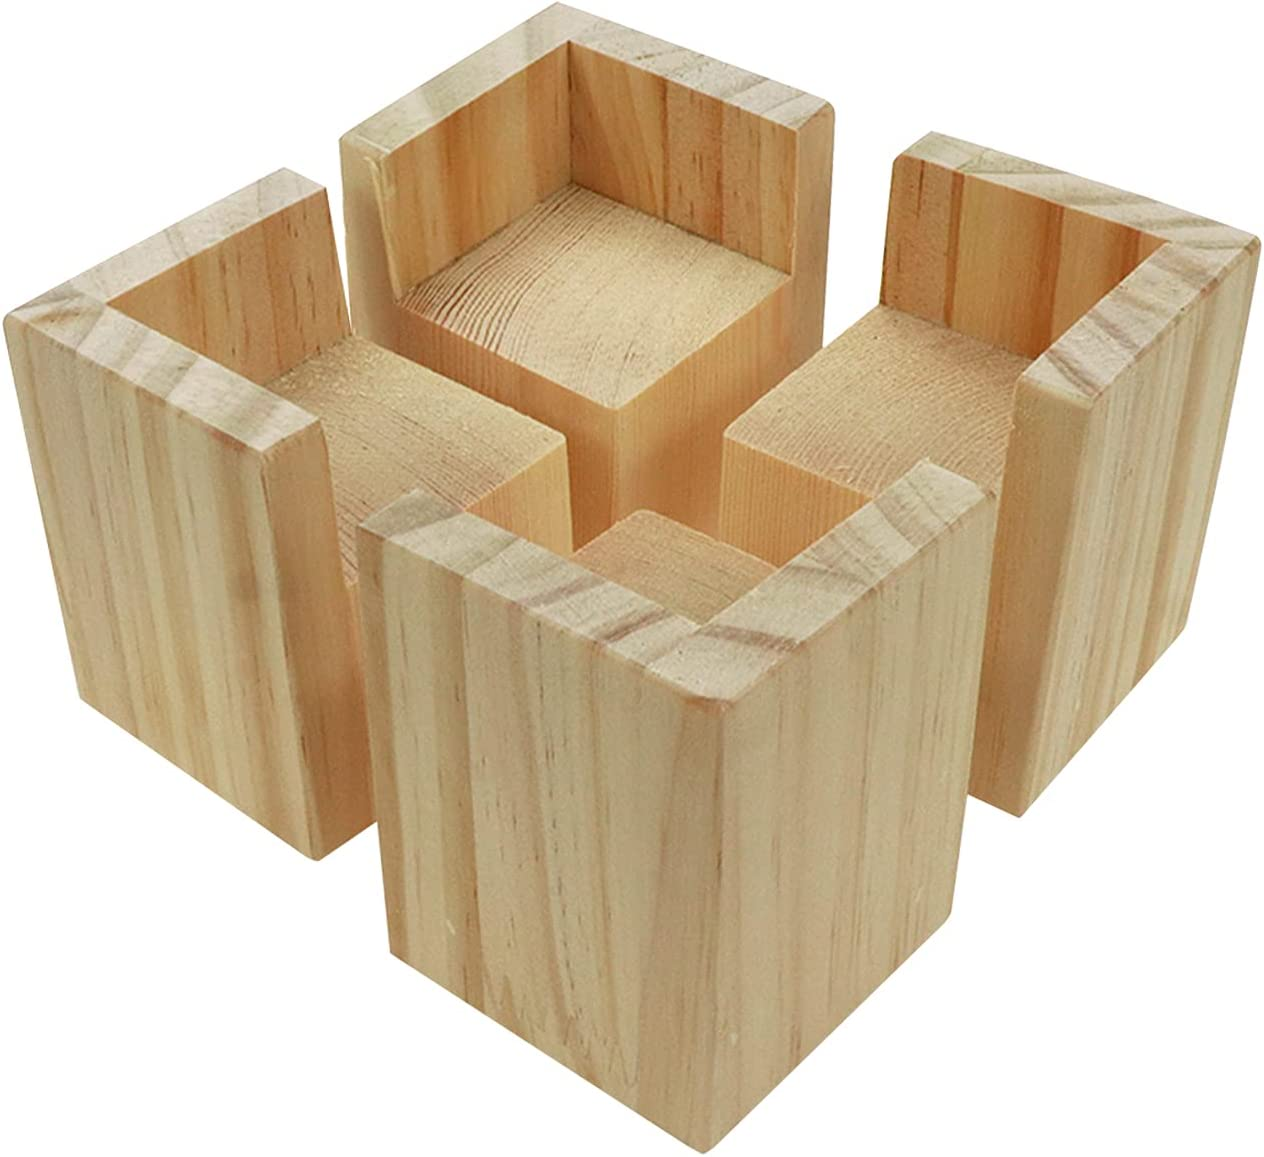 HONJIE Set of 4 Bed Risers Furniture Square Risers 2 Inches Wooden Solid Wood Original Color For DIY Painting Sofa Couch Chair Table Increase Legs